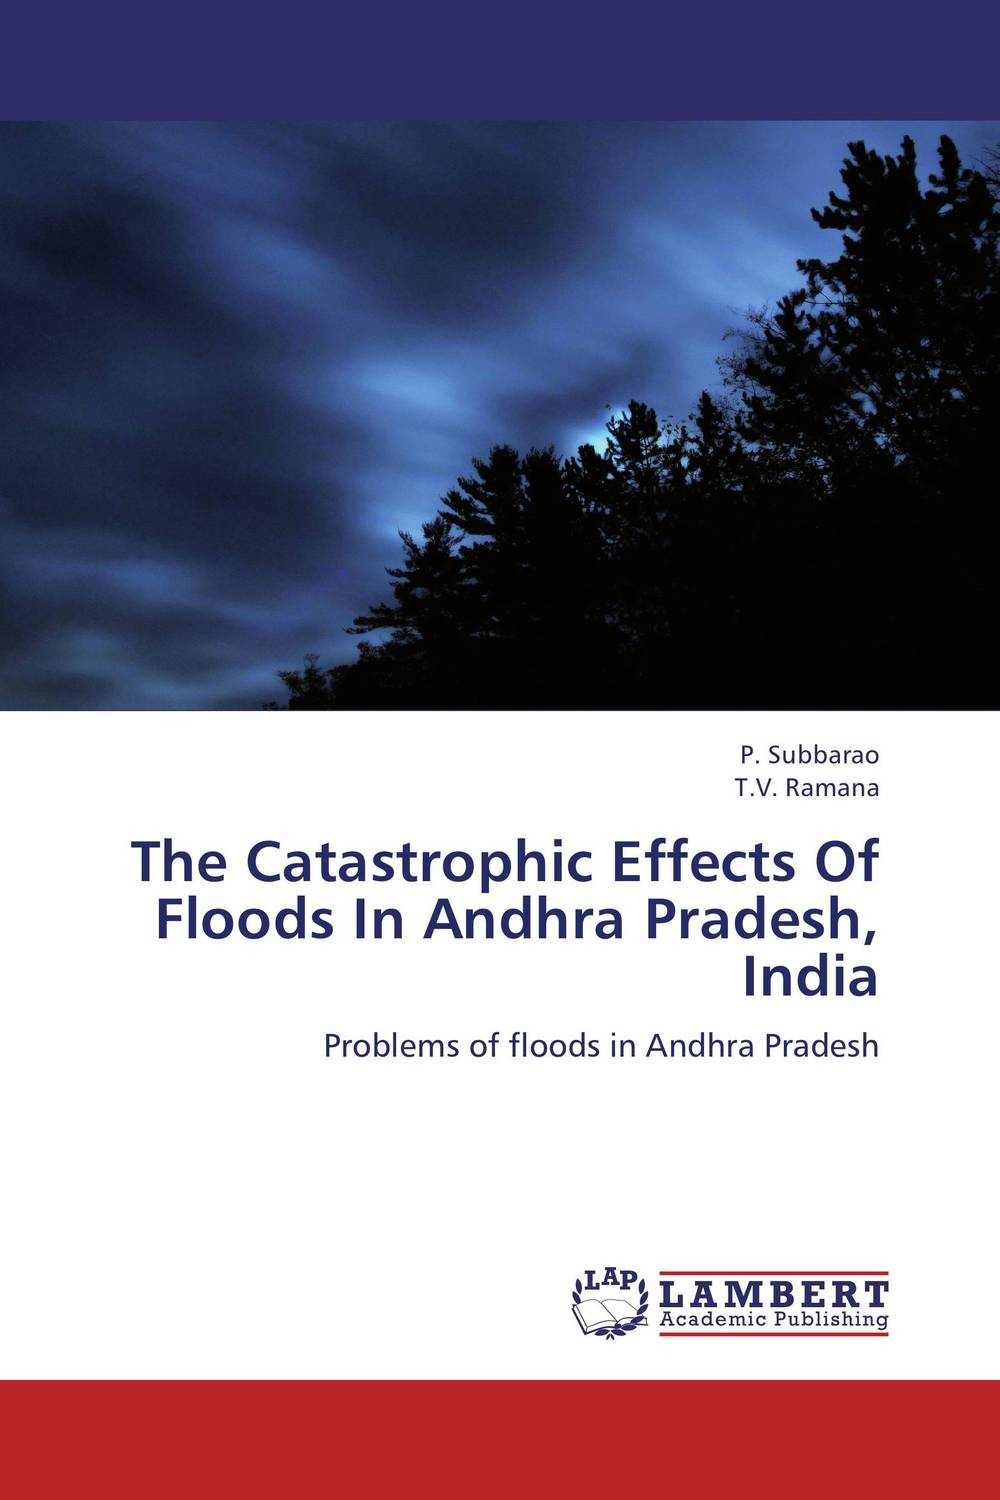 The Catastrophic Effects Of Floods In Andhra Pradesh, India geochemistry of groundwater in a river basin of andhra pradesh india